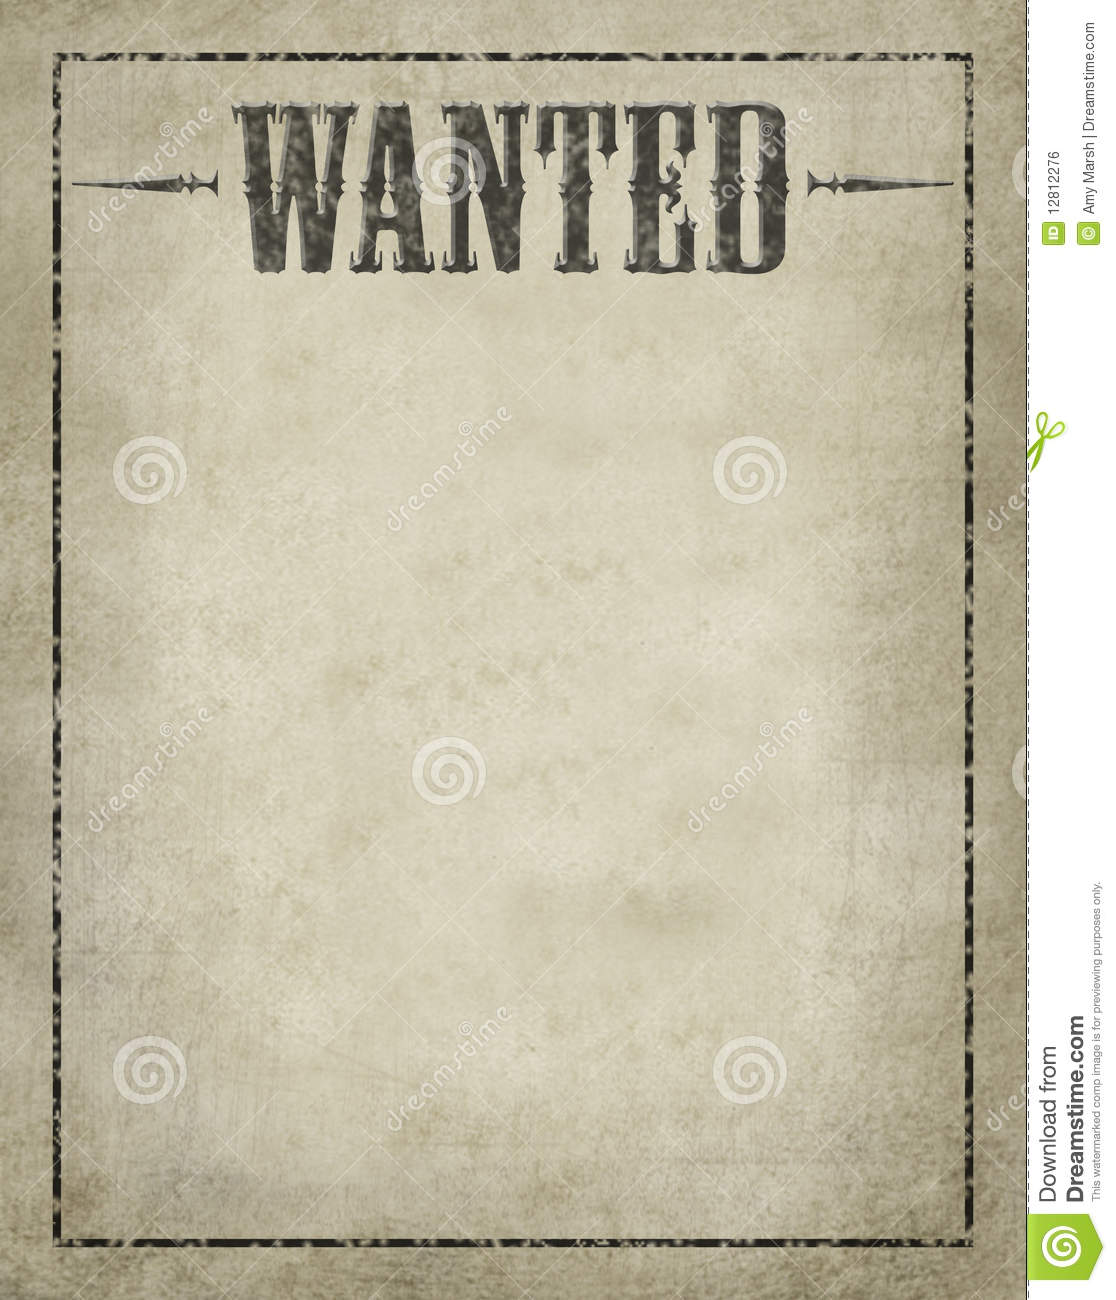 Wanted Poster stock illustration Illustration of wanted 12812276